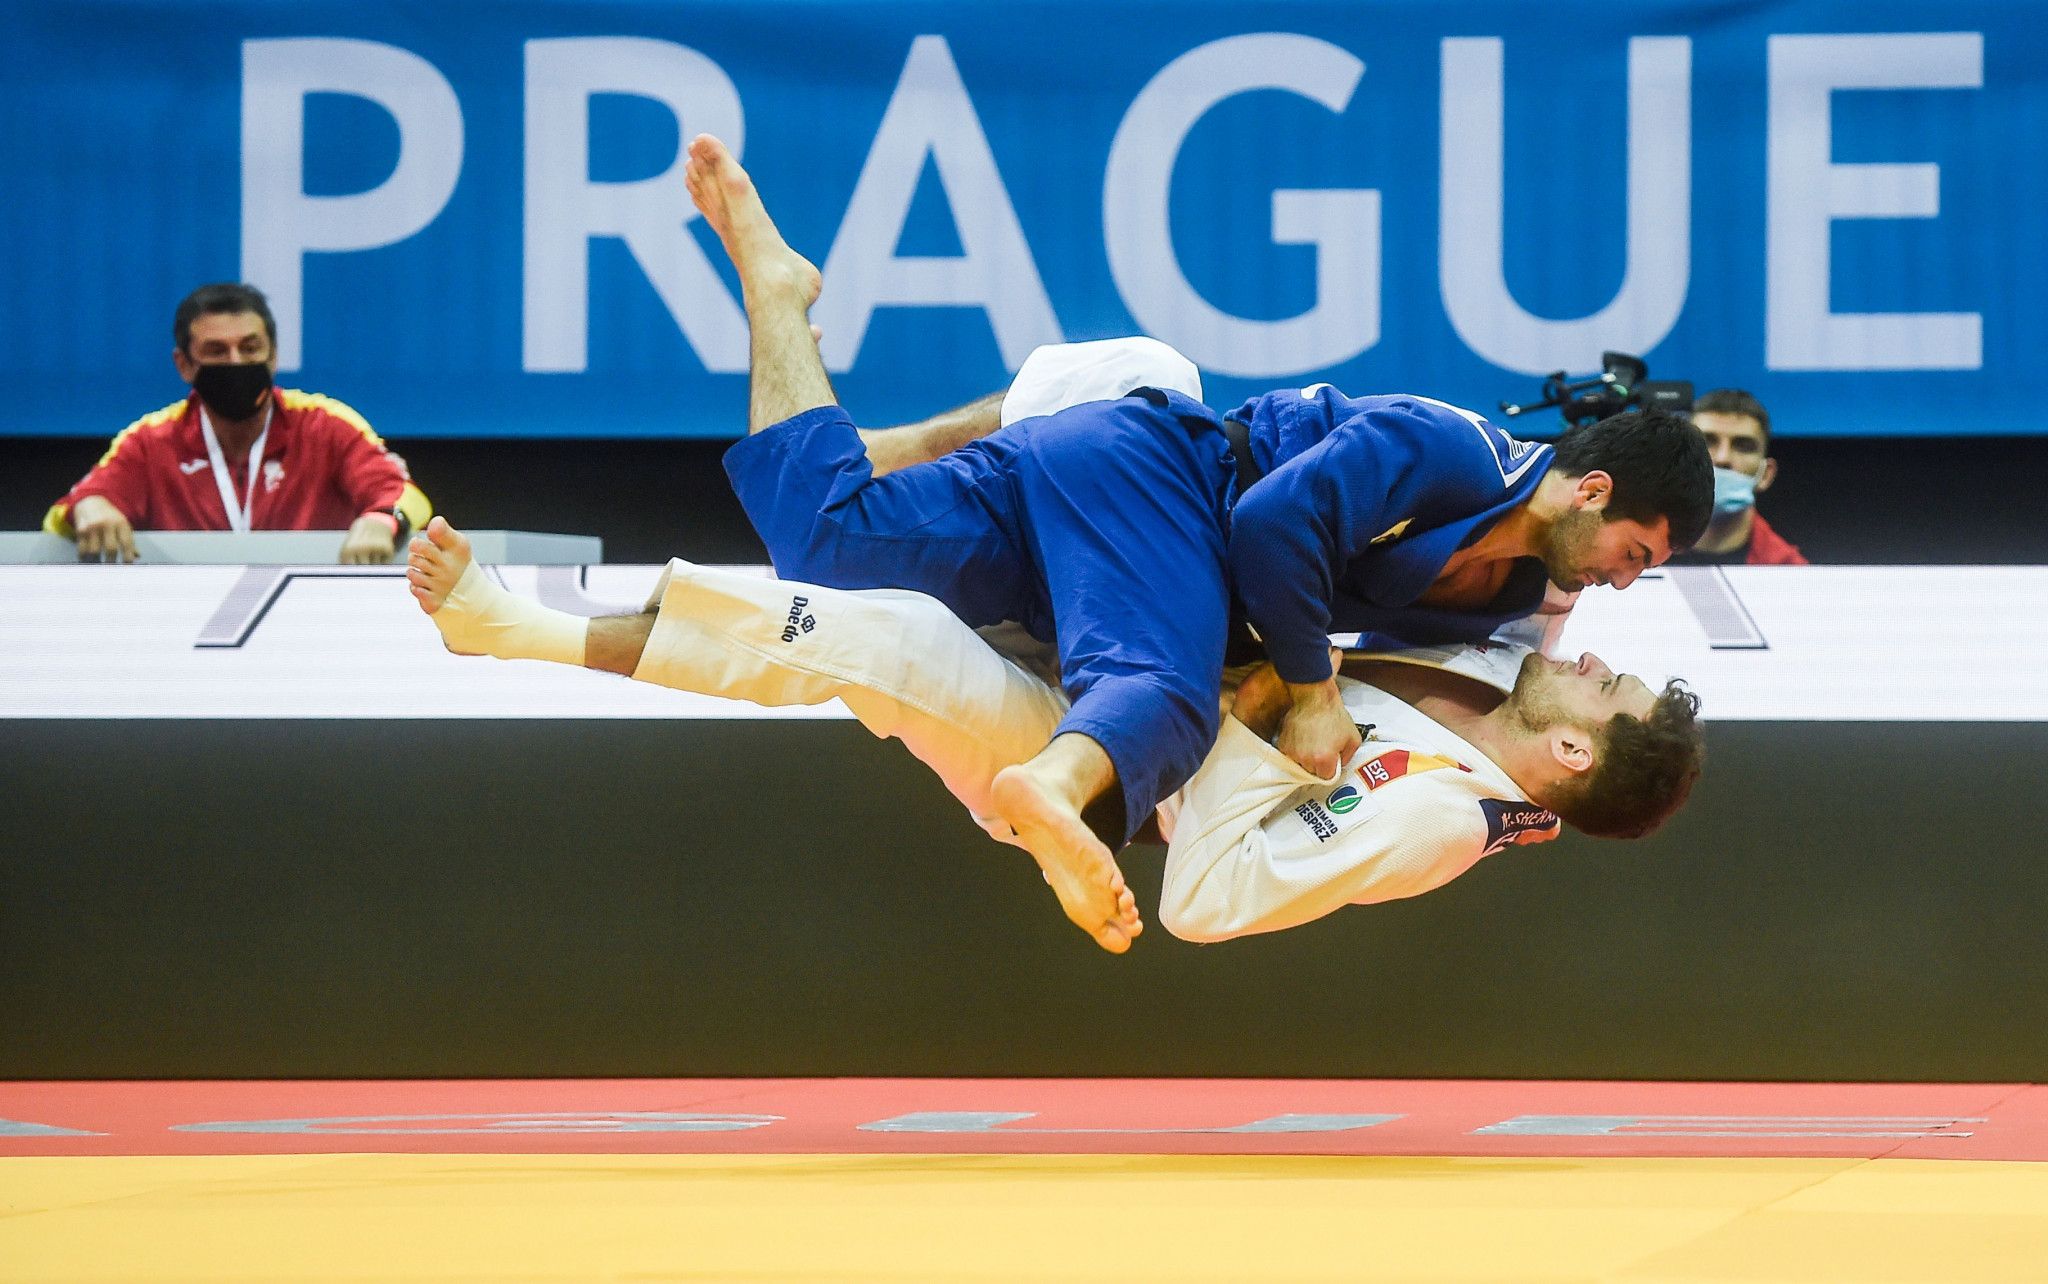 Mikhail Igolnikov, in blue, won his second European title in Prague ©Getty Images